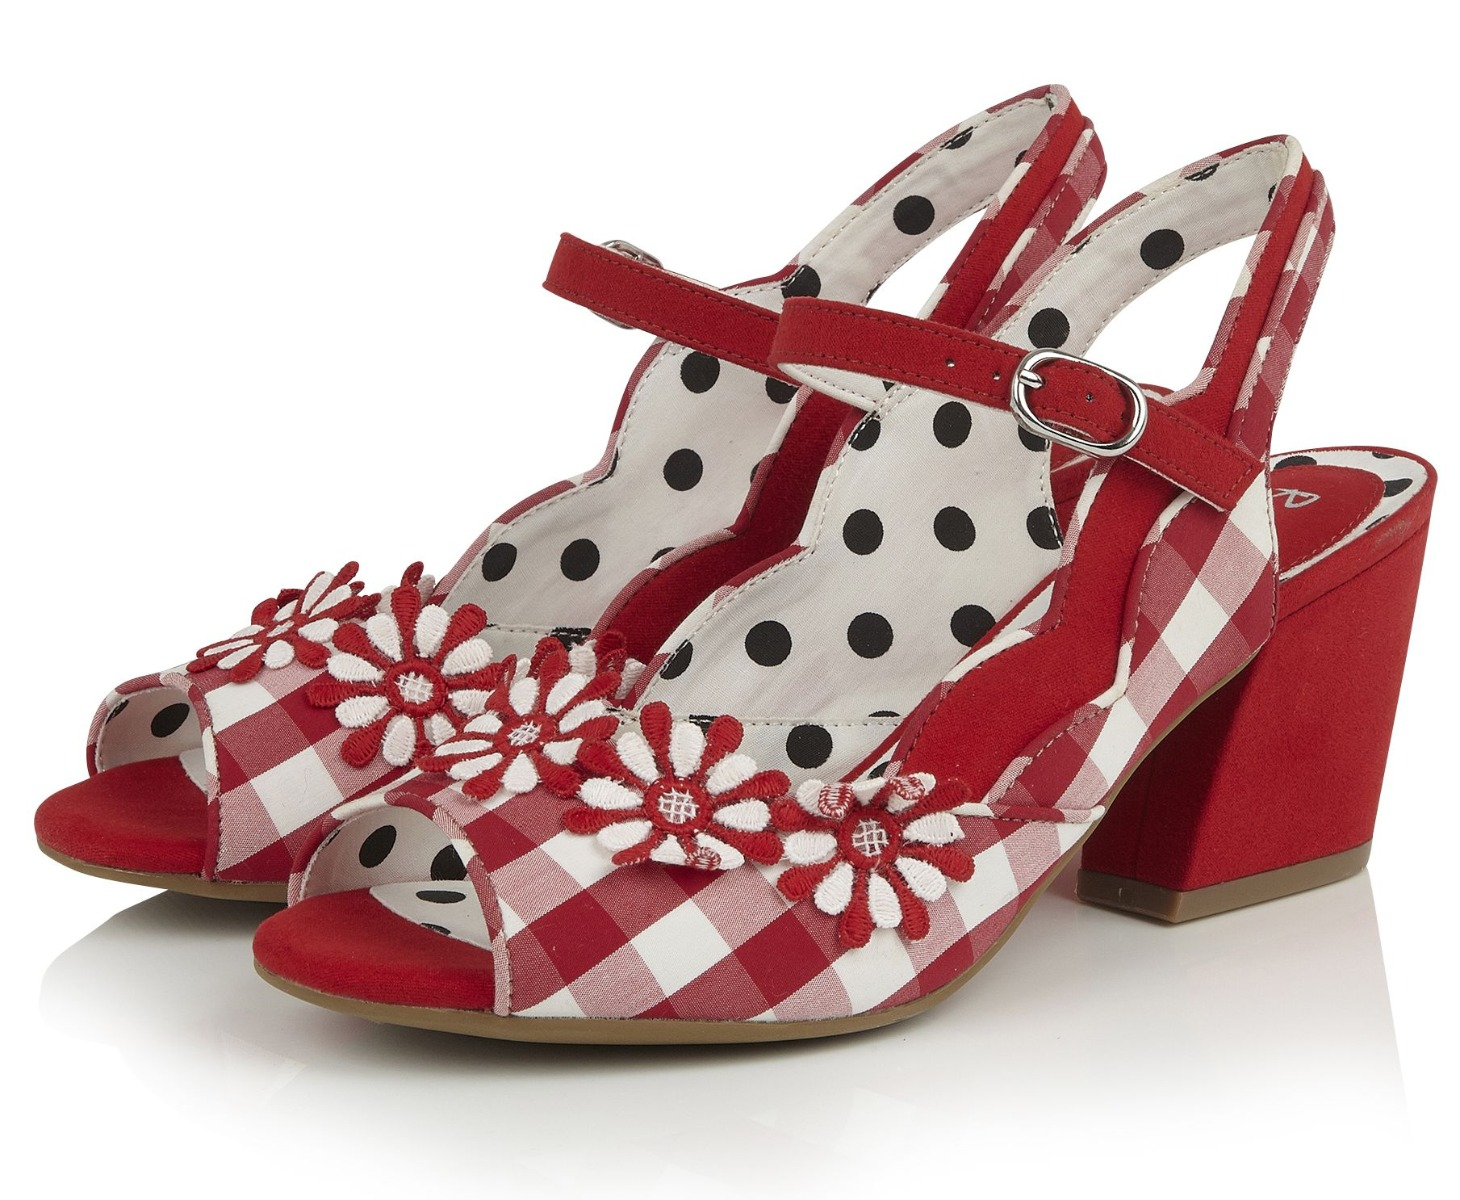 rs09282r_chaussures-nu-pieds-pin-up-retro-50-s-glam-chic-hera-rouge